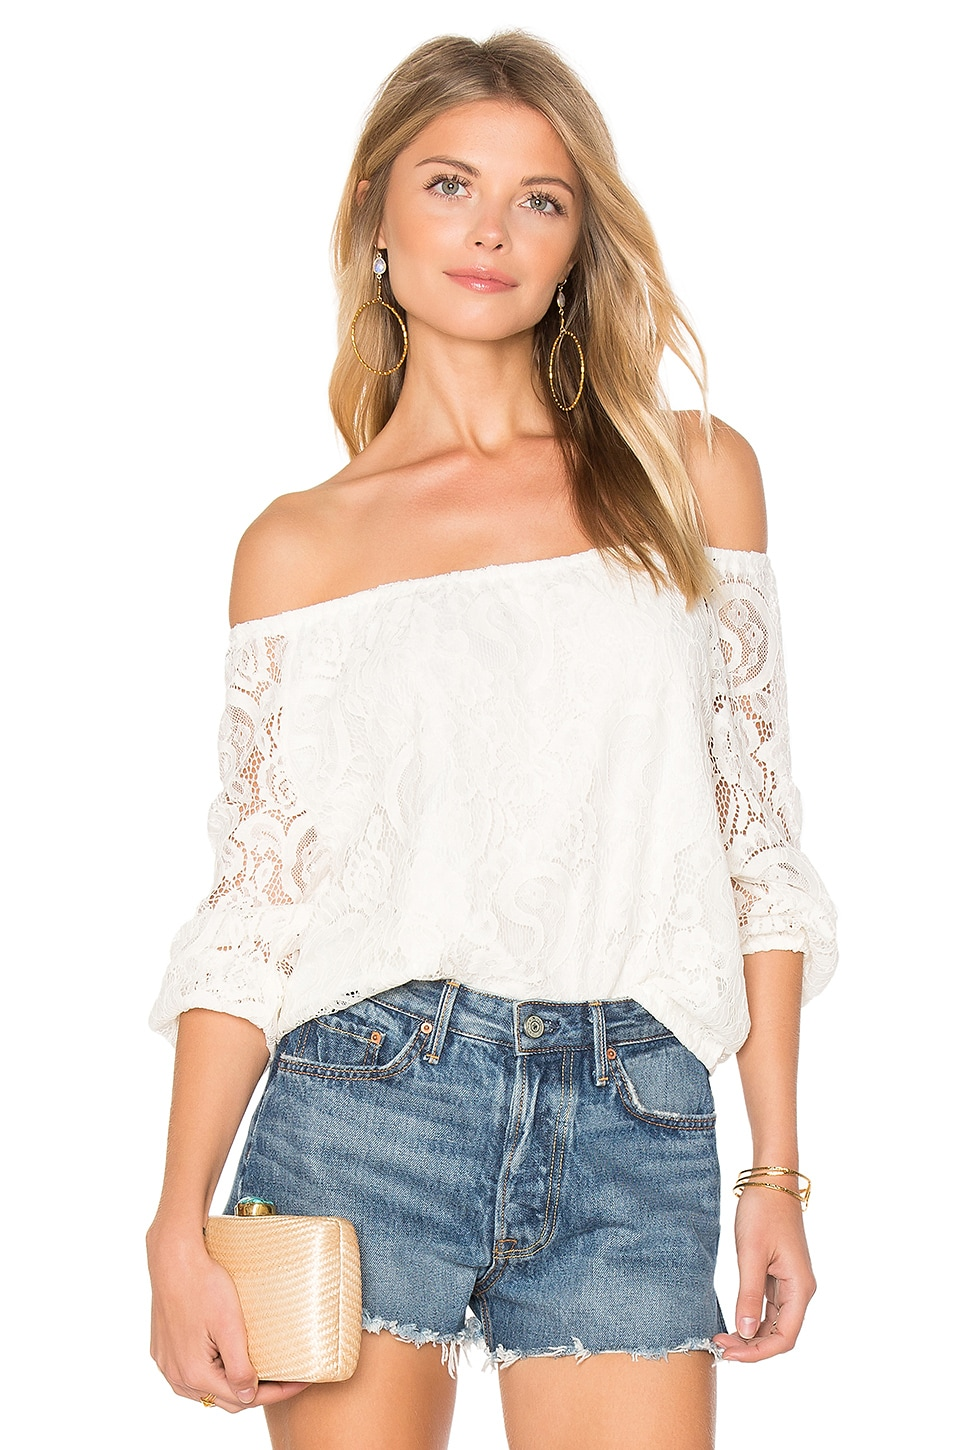 cupcakes and cashmere Karla Top in Ivory